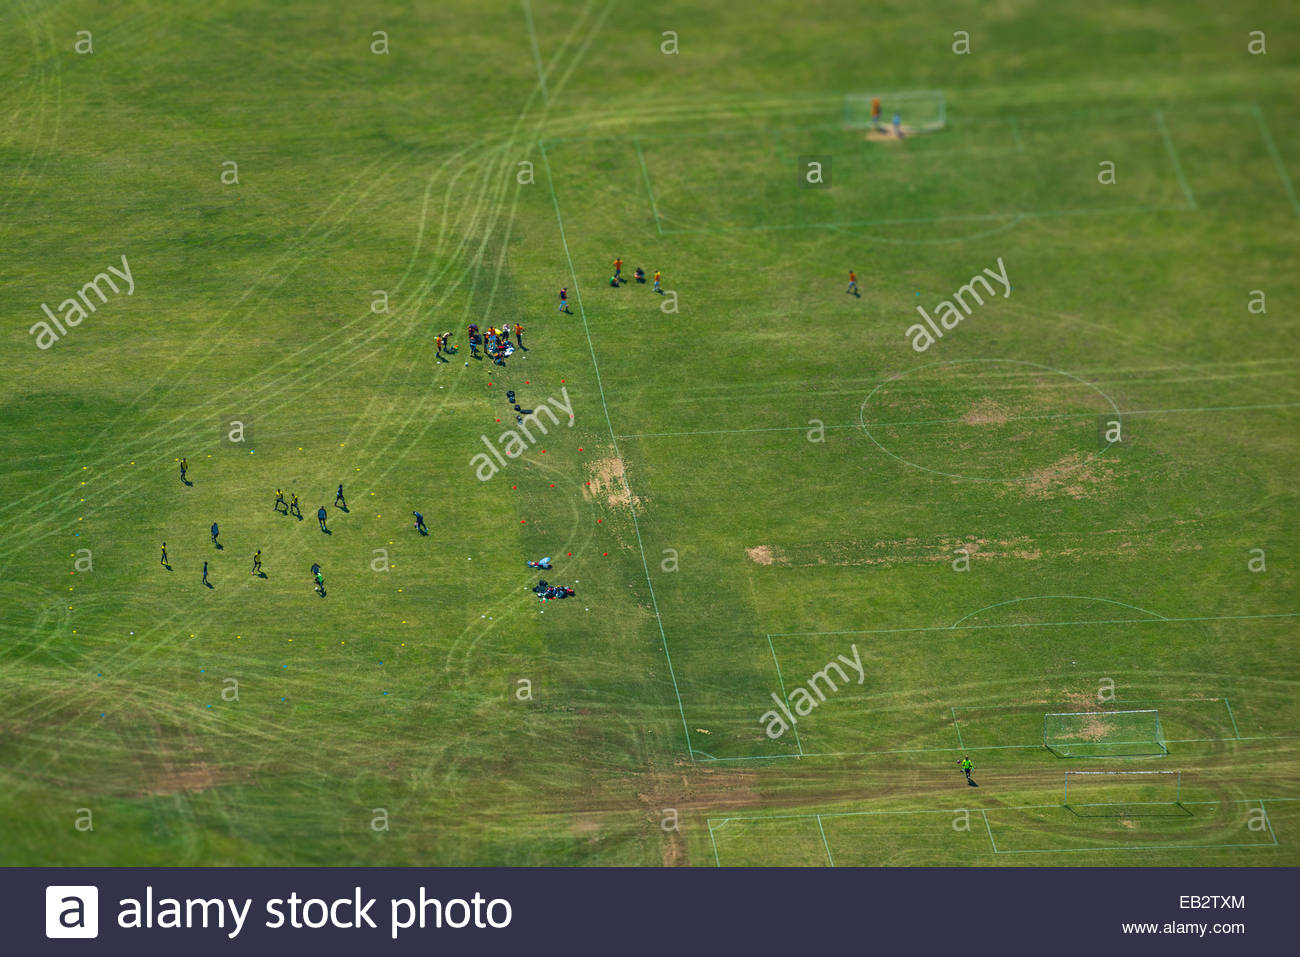 An aerial view of a football pitch in London - Stock Image